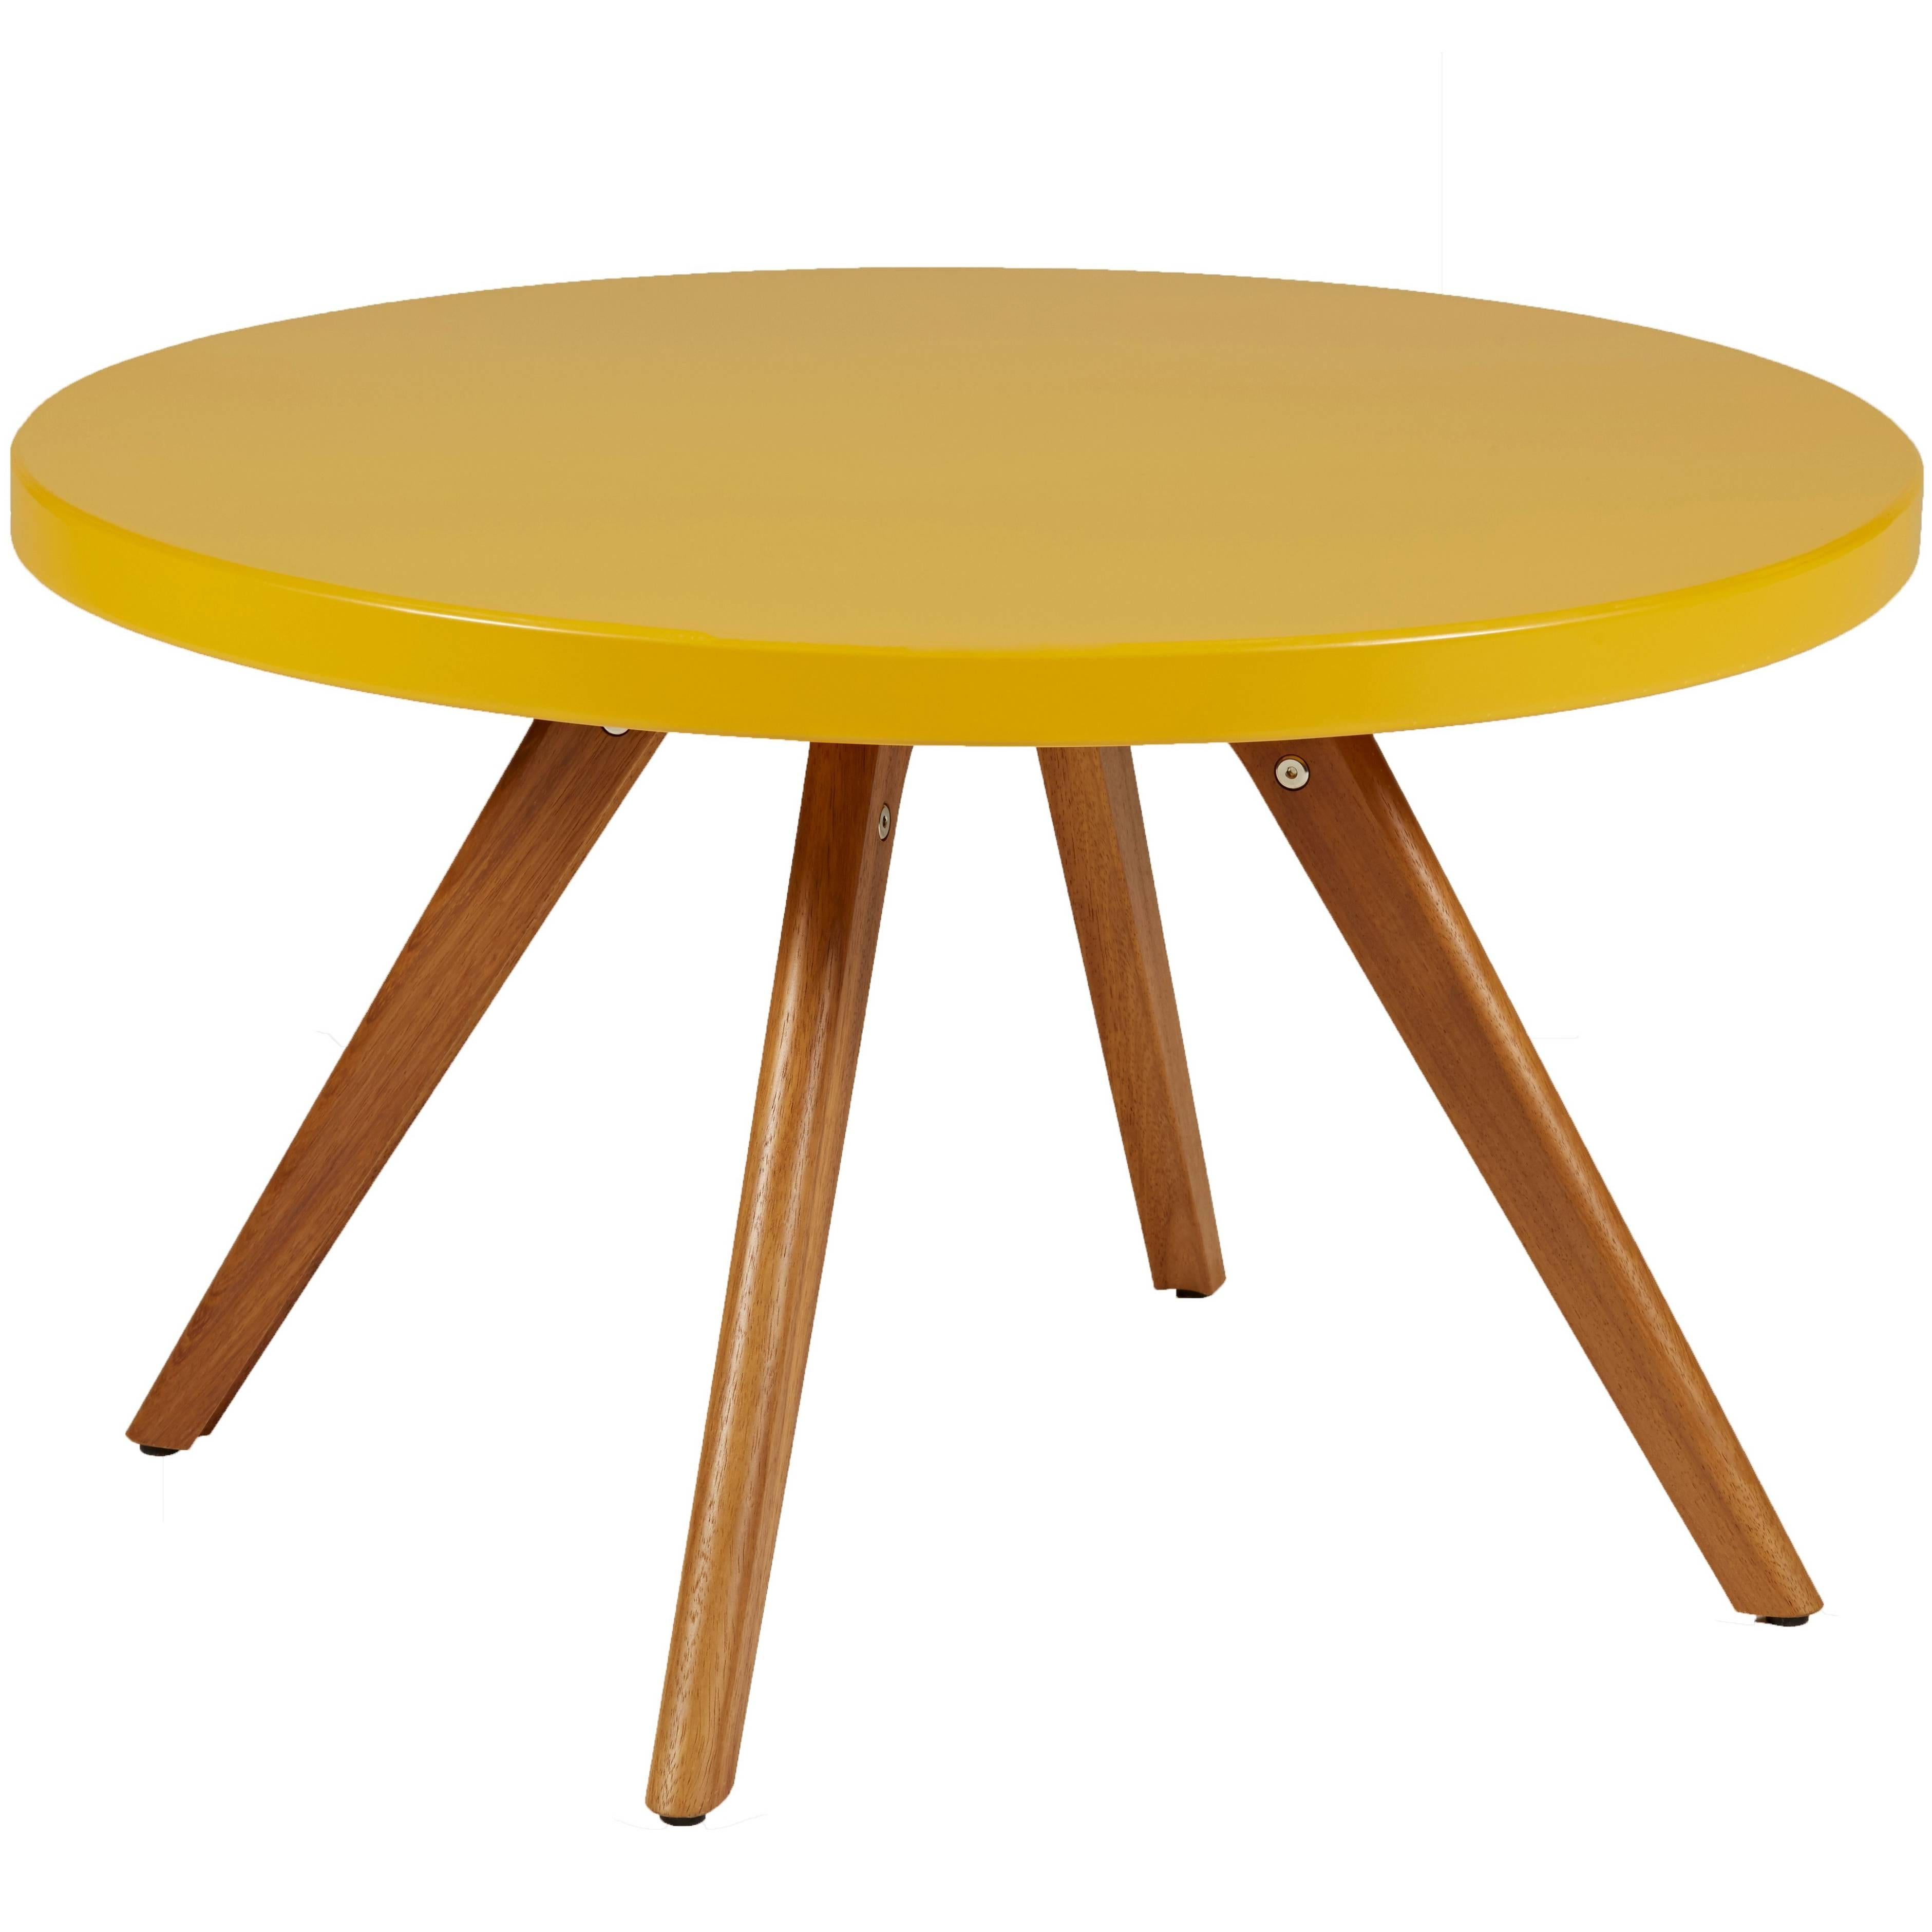 Charmant K17 Low Round Table 80 In Mustard Yellow By Tolix For Sale